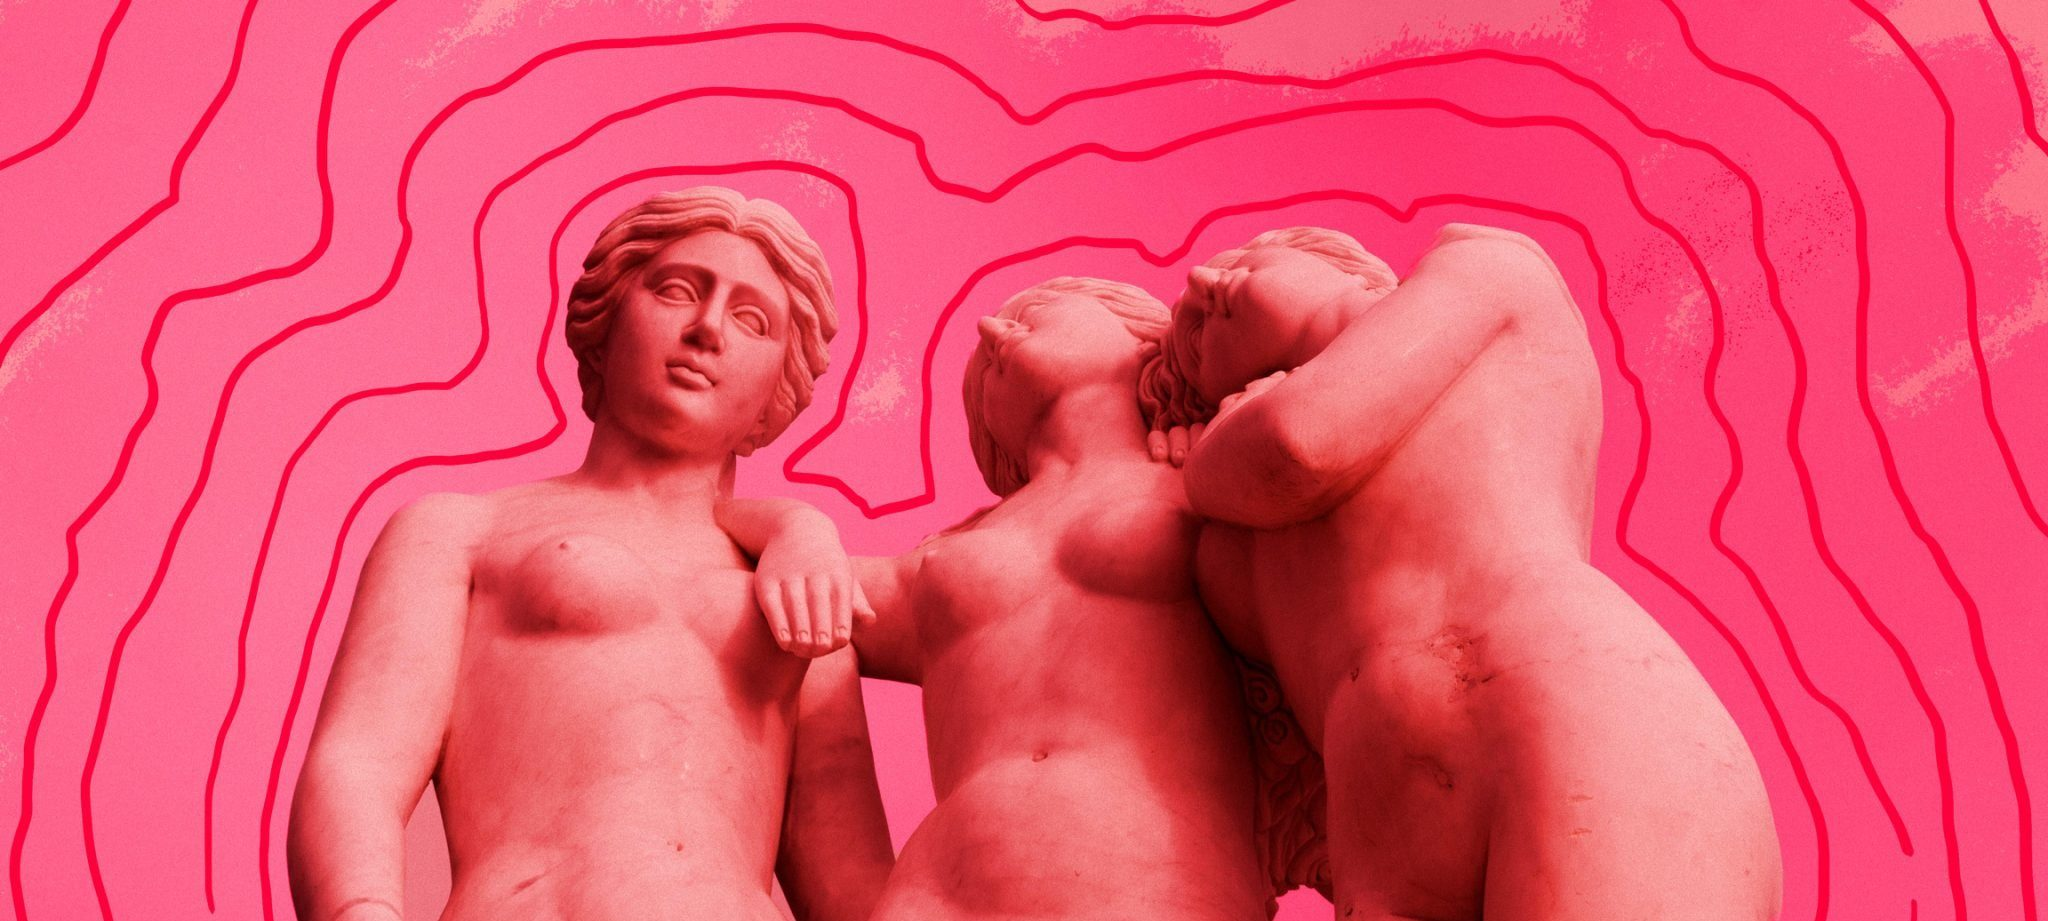 Three stone female naked sculptures stand in a row with their arms over each other, their skin and the background is a bright shade of pink.